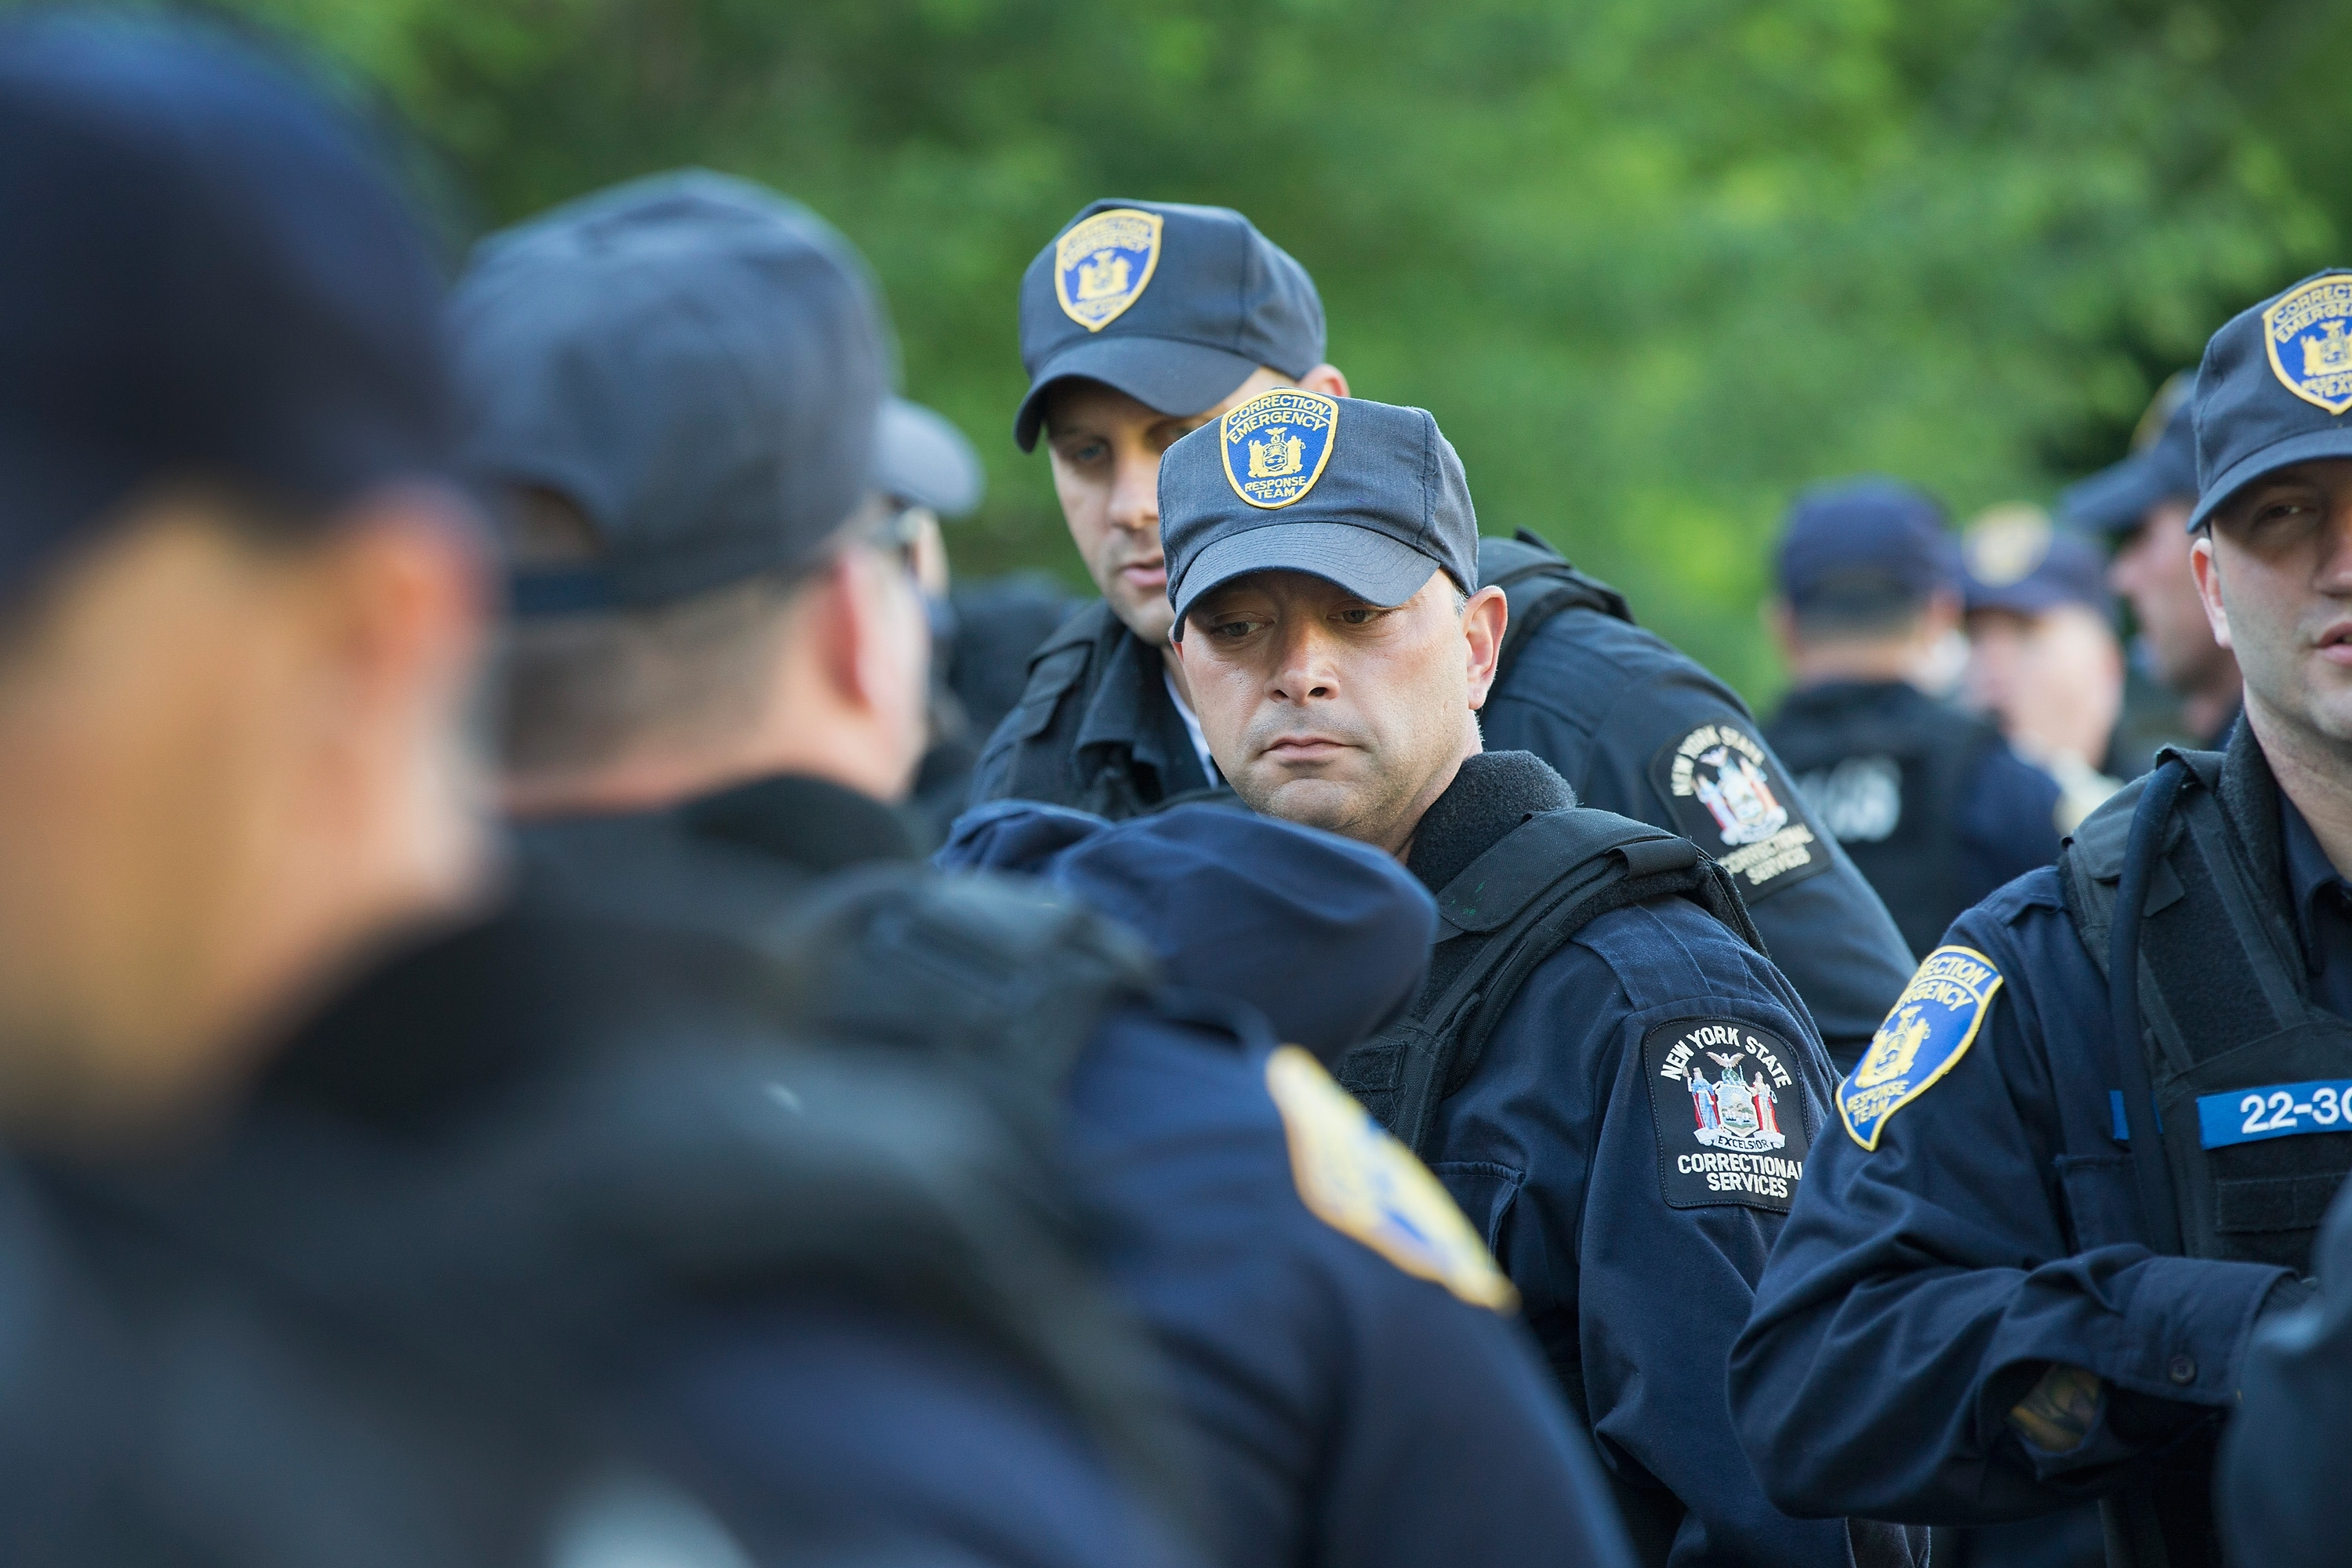 Hundreds of law enforcement personnel, along with members of the media, have converged on the Adirondacks for the manhunt, and they all have needed a place to stay.